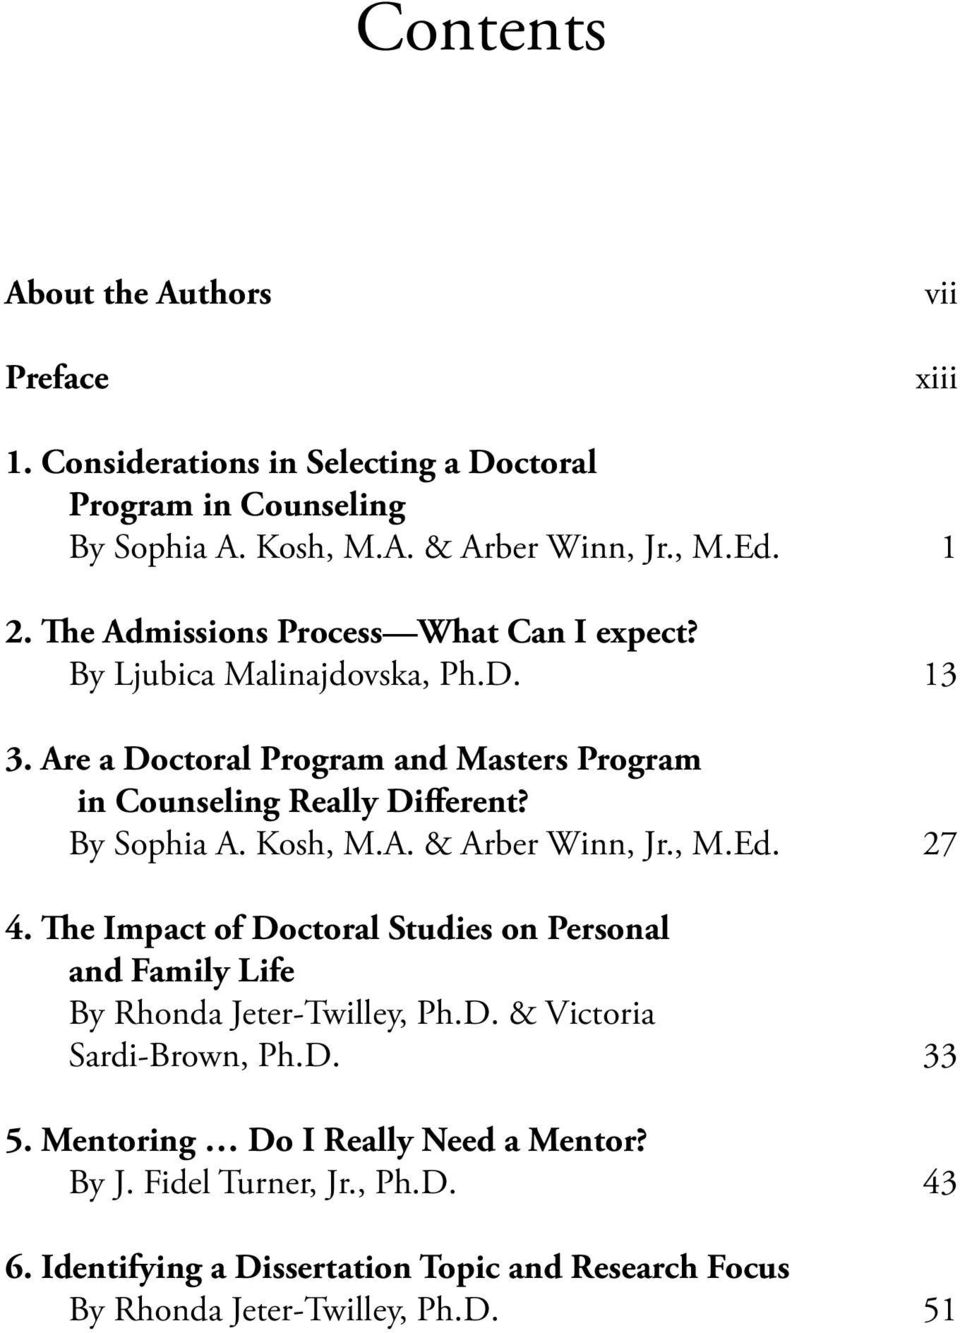 By Sophia A. Kosh, M.A. & Arber Winn, Jr., M.Ed. 27 4. The Impact of Doctoral Studies on Personal and Family Life By Rhonda Jeter-Twilley, Ph.D. & Victoria Sardi-Brown, Ph.